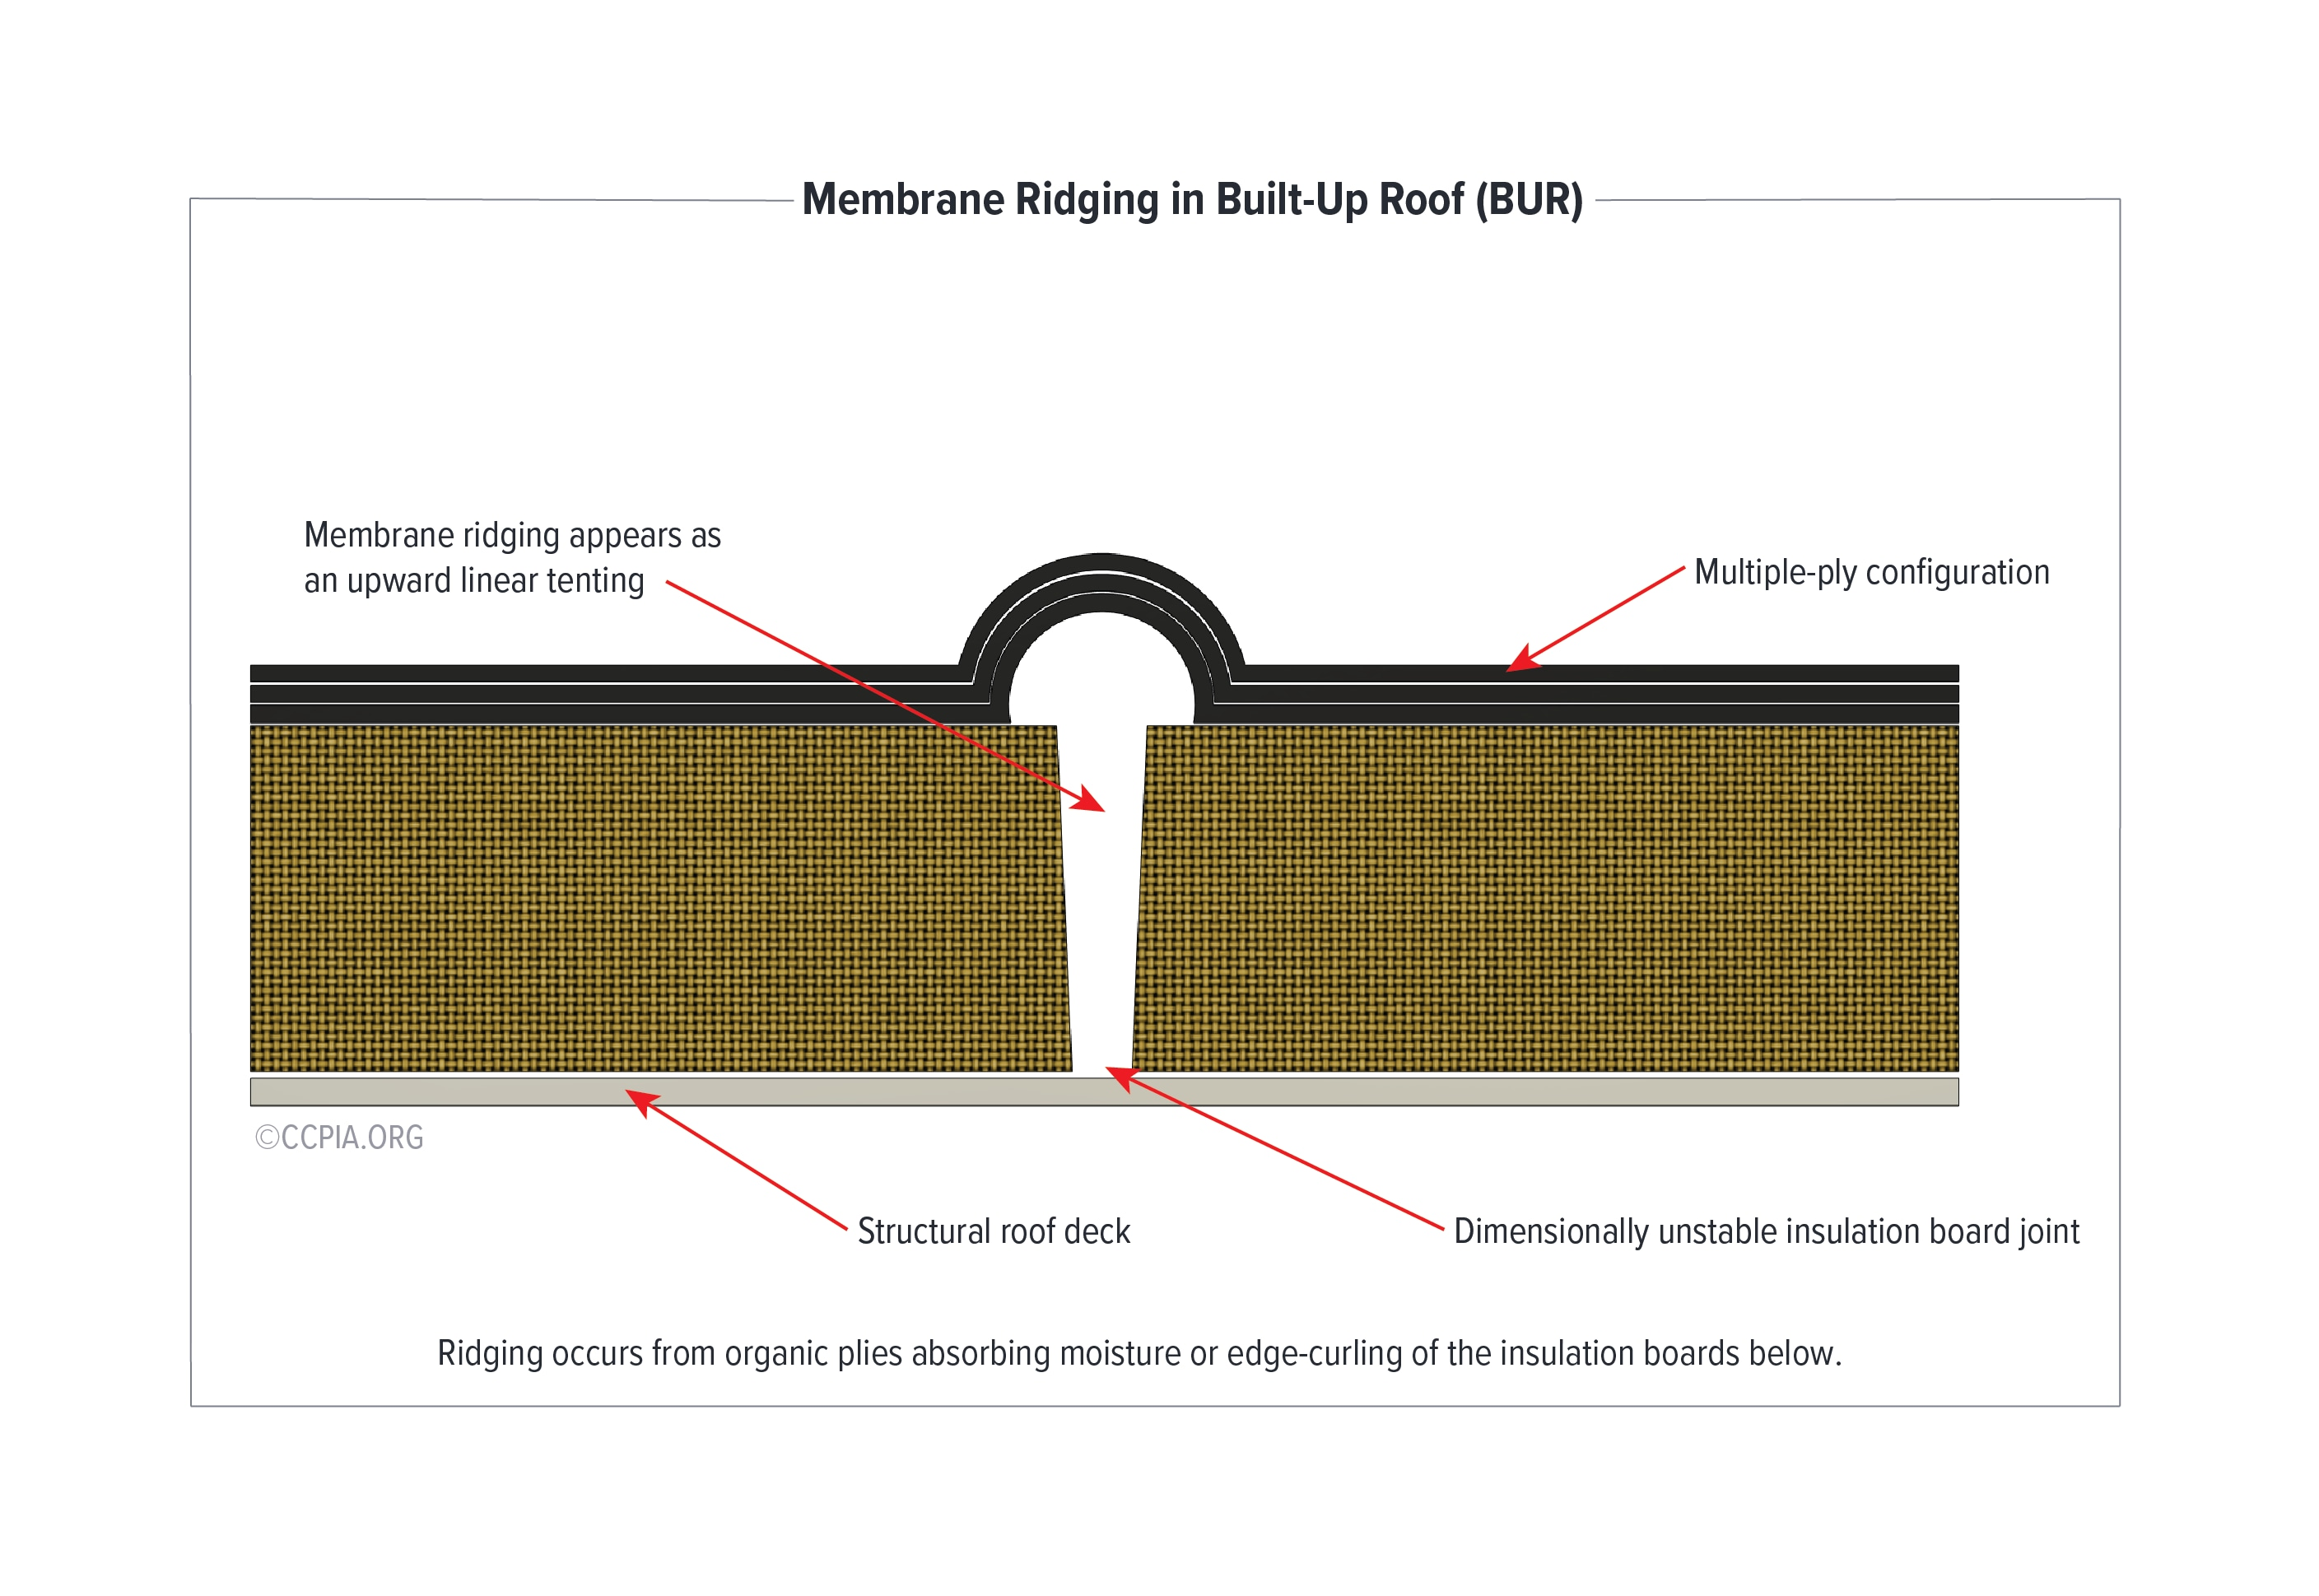 Membrane Ridging in Built-Up Roof (BUR): Ridging occurs from organic plies absorbing moisture or edge-curling of the insulation boards below.